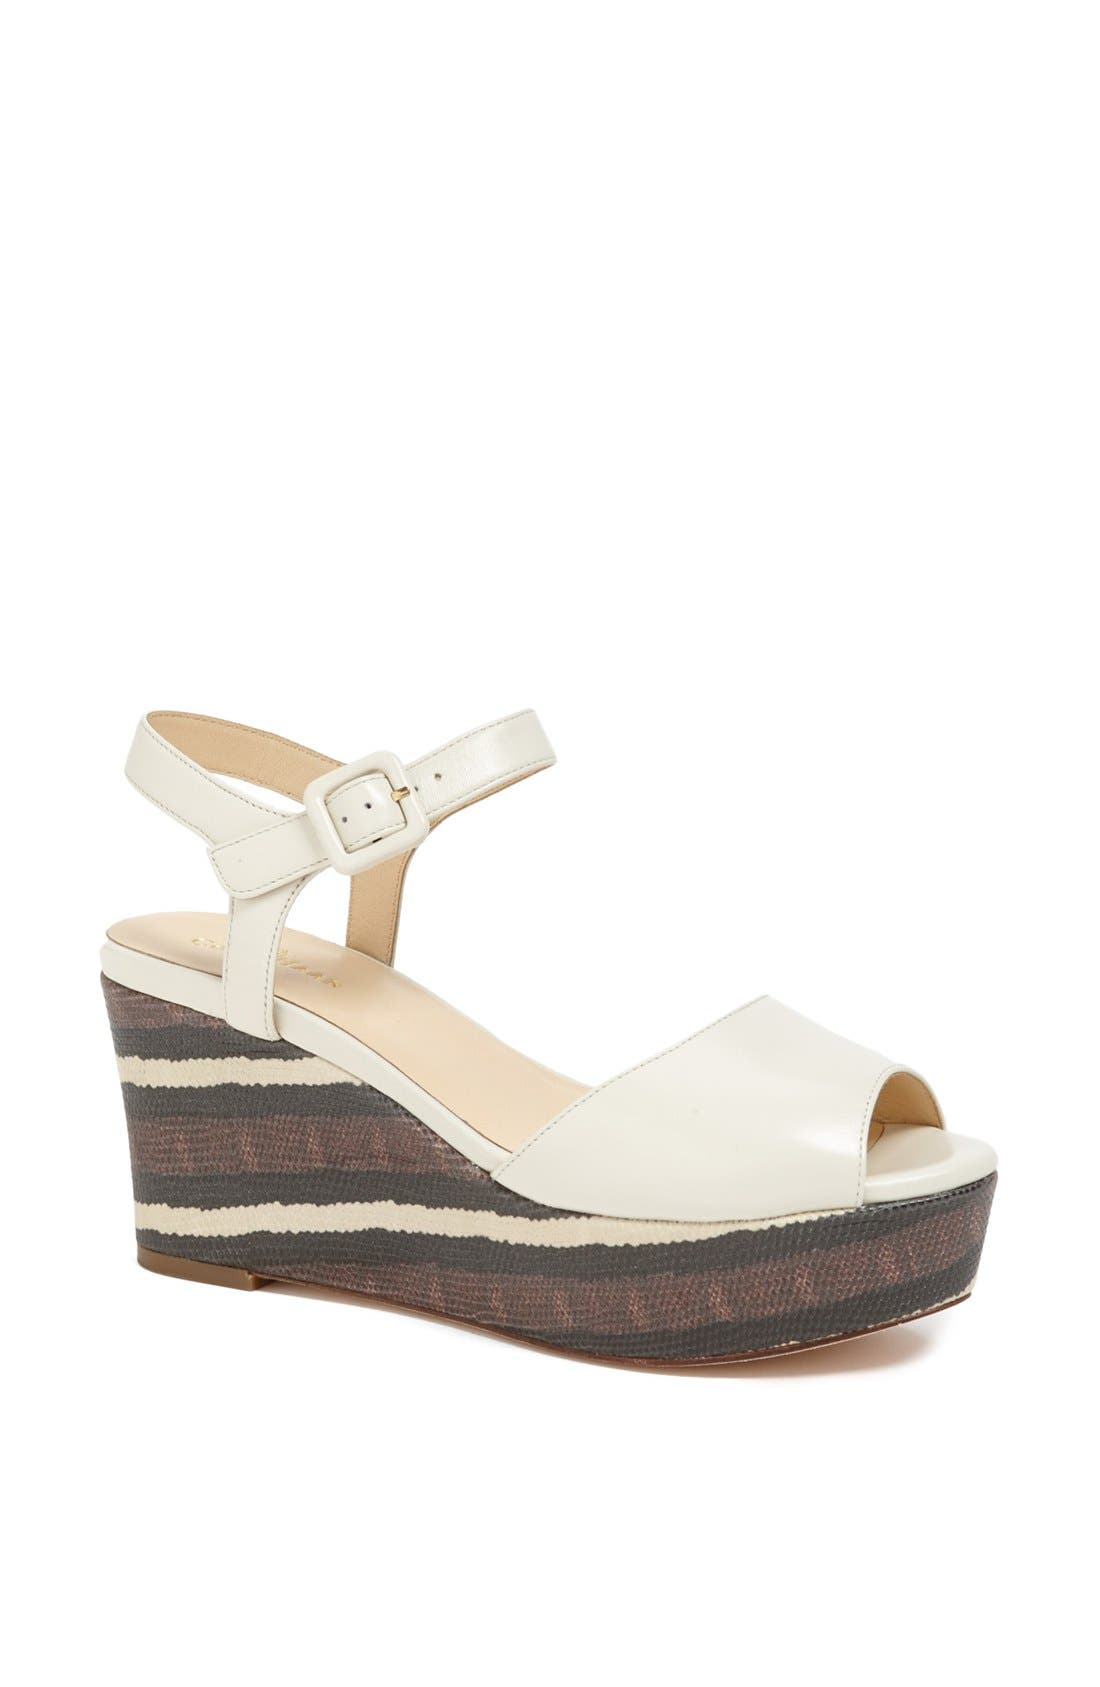 Alternate Image 1 Selected - Cole Haan 'Gillian' Platform Wedge Sandal